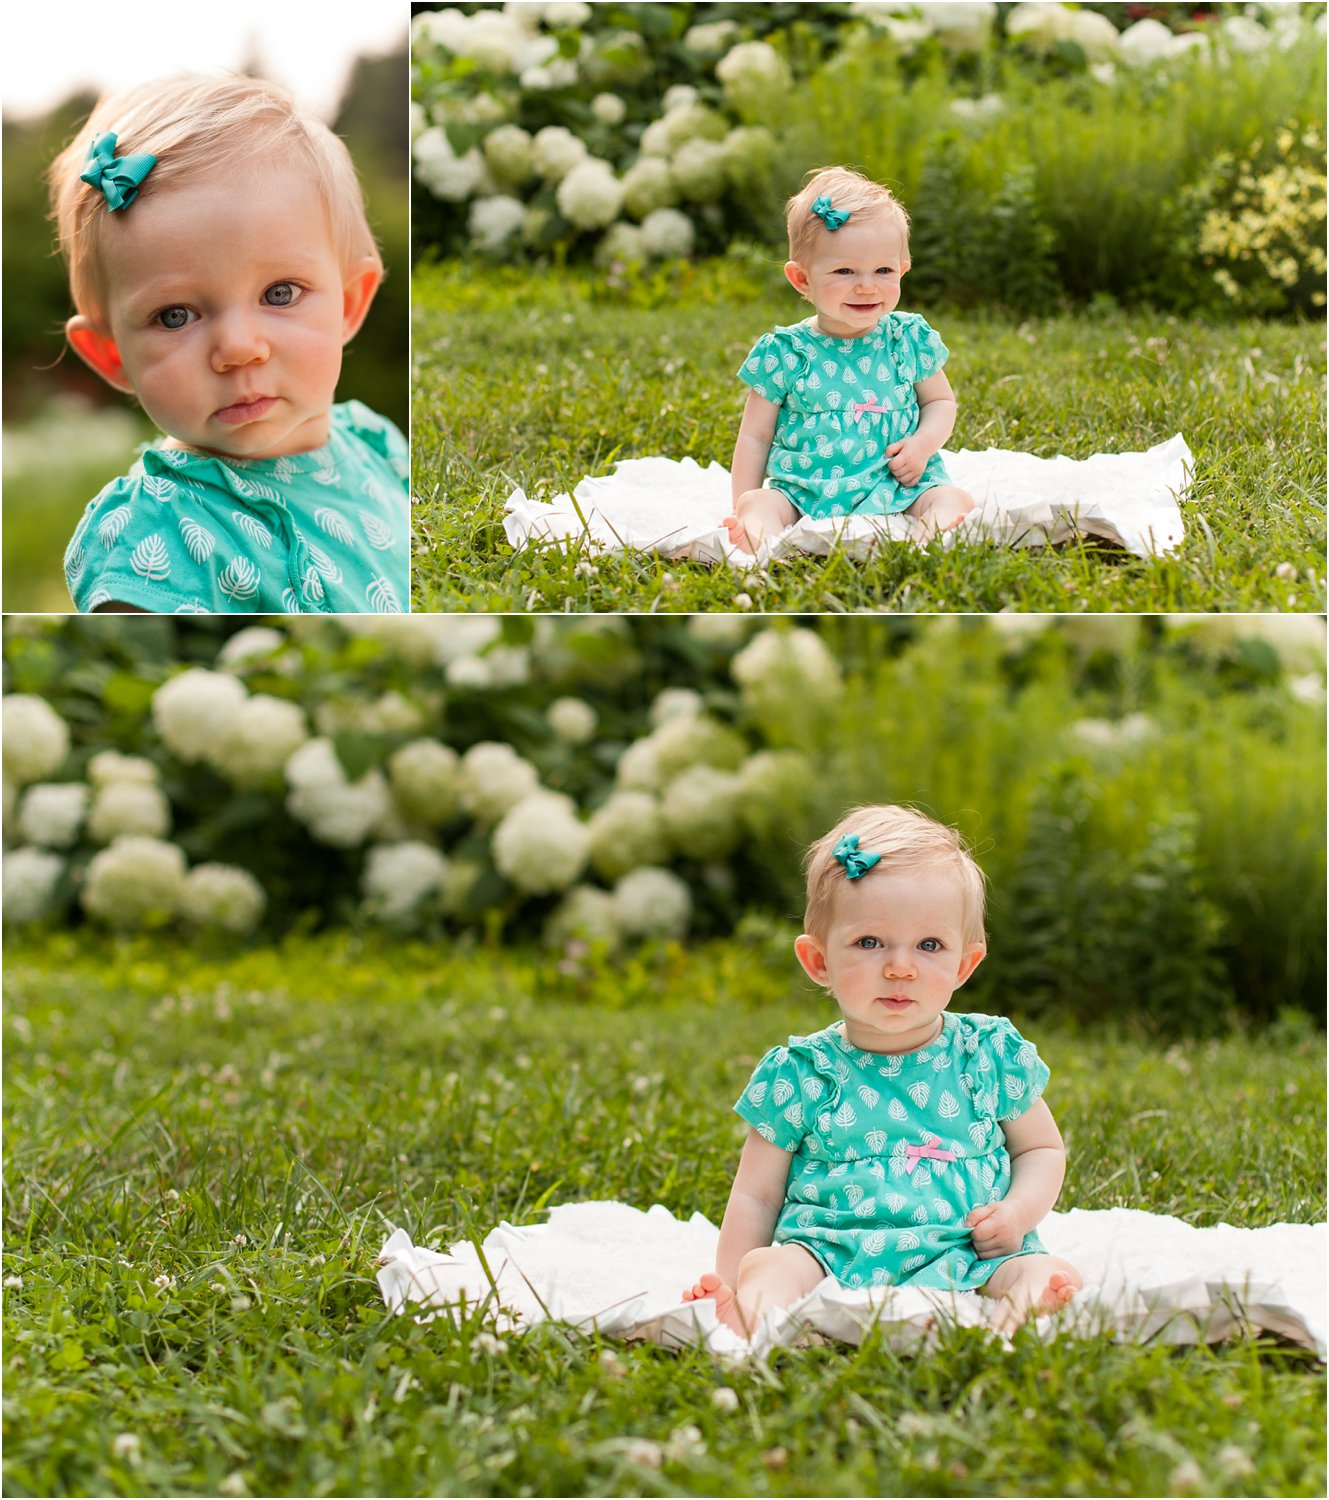 Blandy_Arboretum_Sibling_Mini_Sessions_Ouzts_0009.jpg